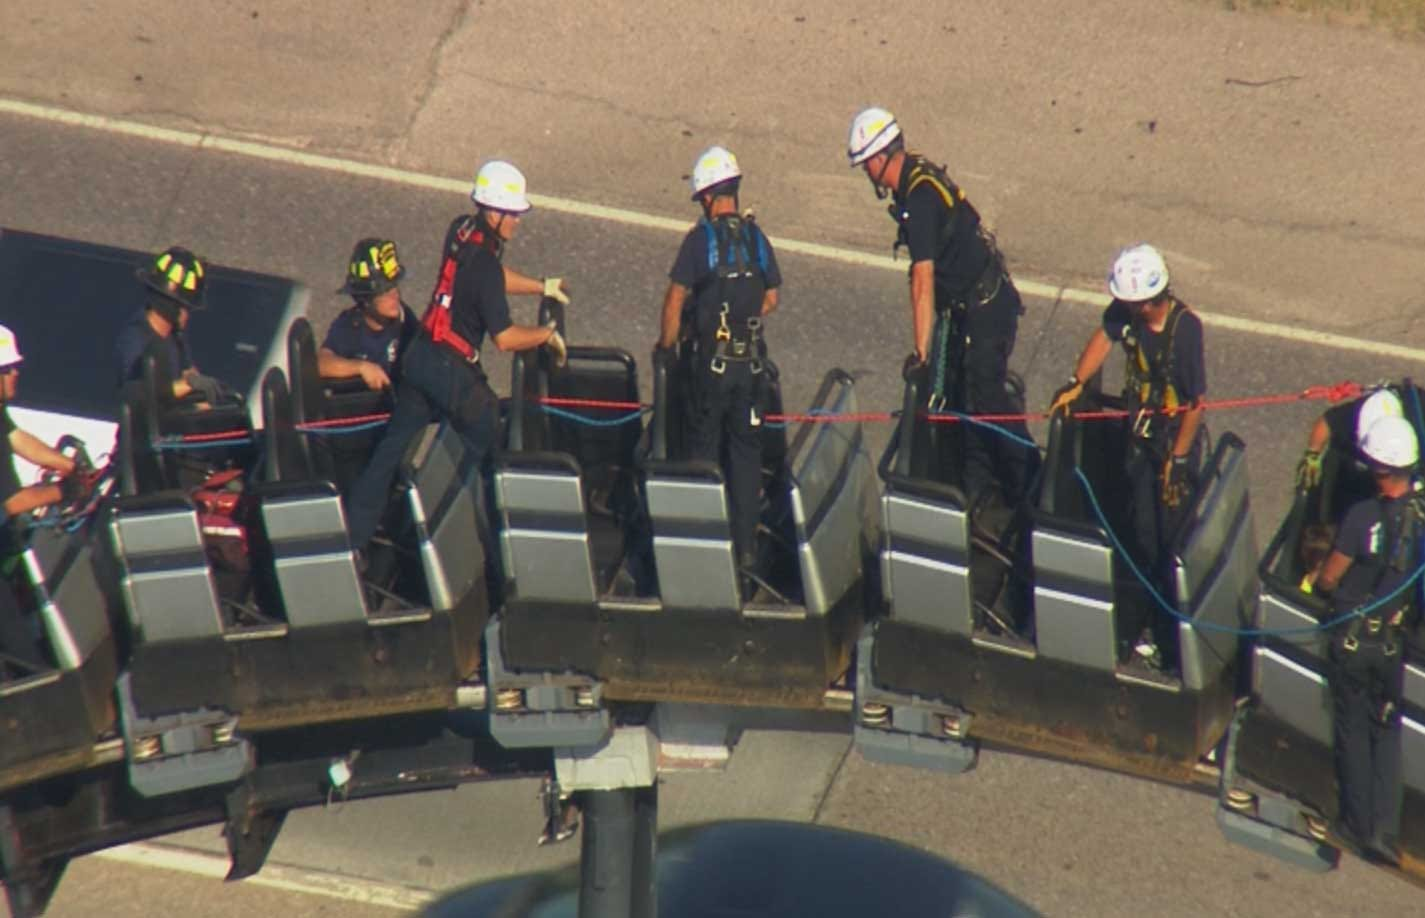 OKC Firefighters Reflect On Roller Coaster Rescue At Frontier City